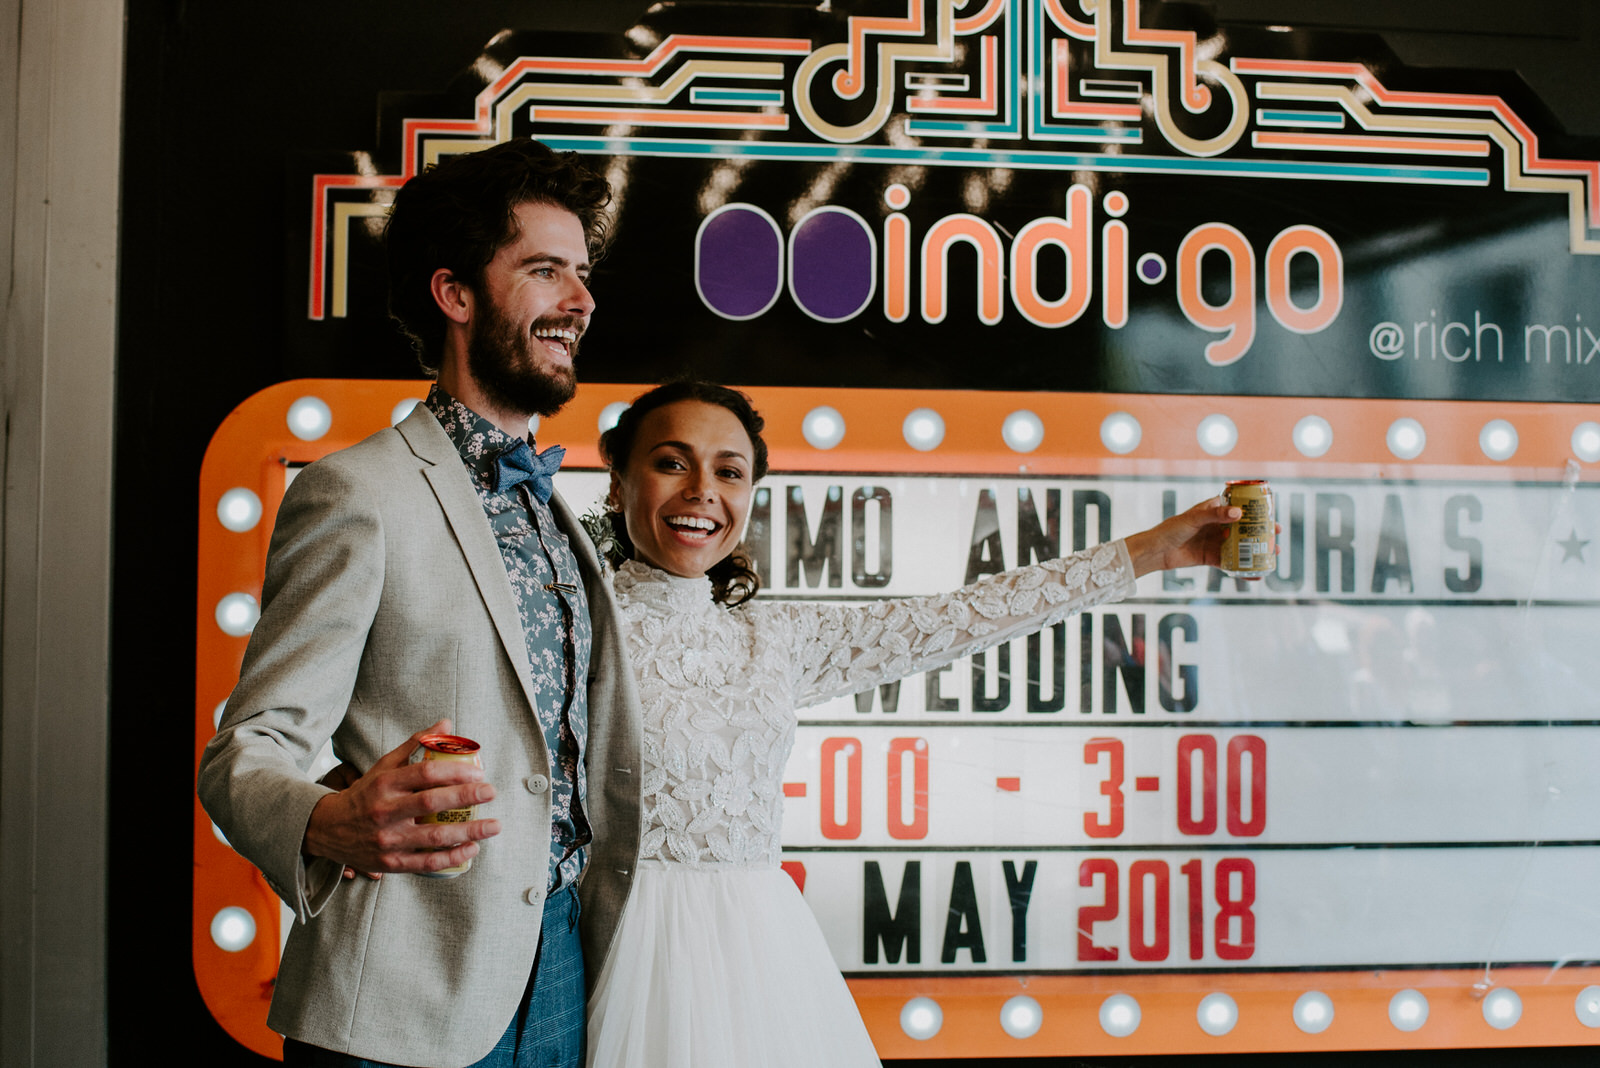 Alternative_Shoreditch_Cinema_Wedding_London_14.JPG